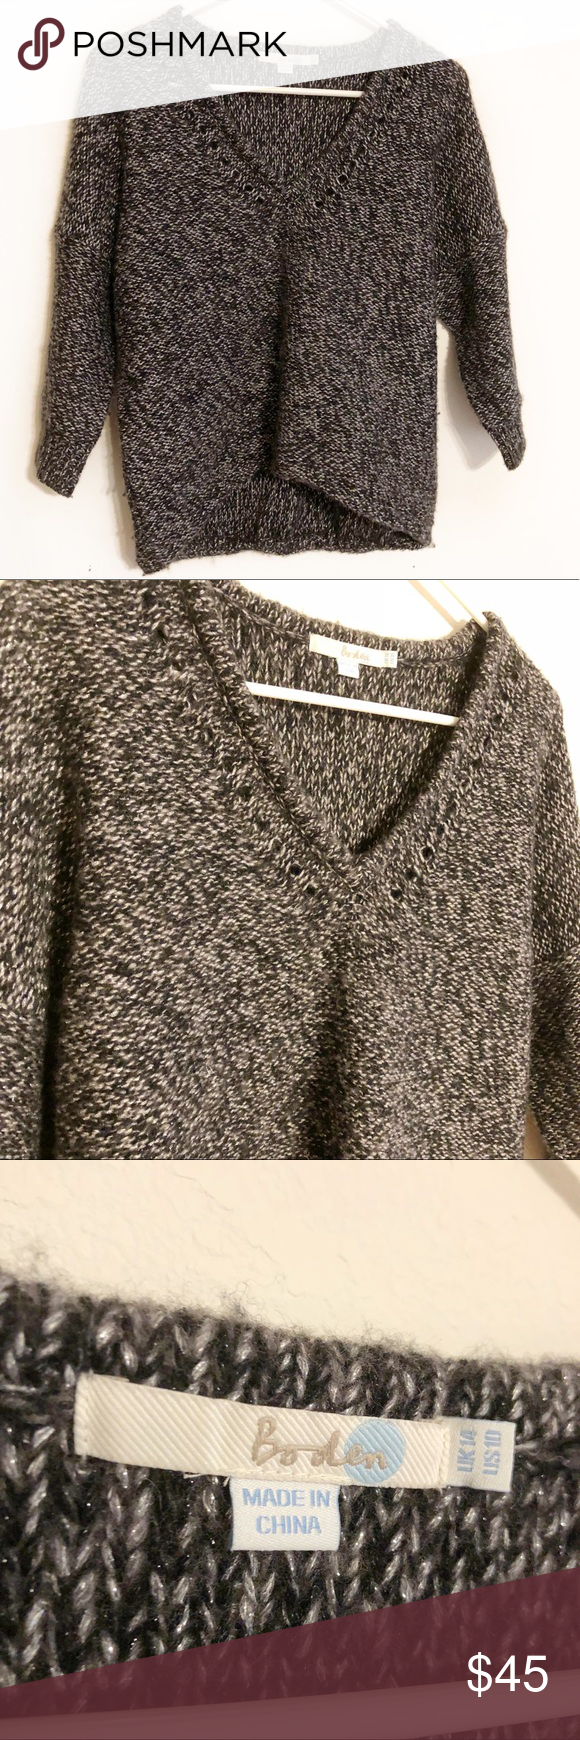 368b70fb256871 Boden metallic v neck sweater Boden size 10 sweater. 3 4 length sleeves. High  low hem. Black and grey metallic knit. V neck with small cutouts along ...